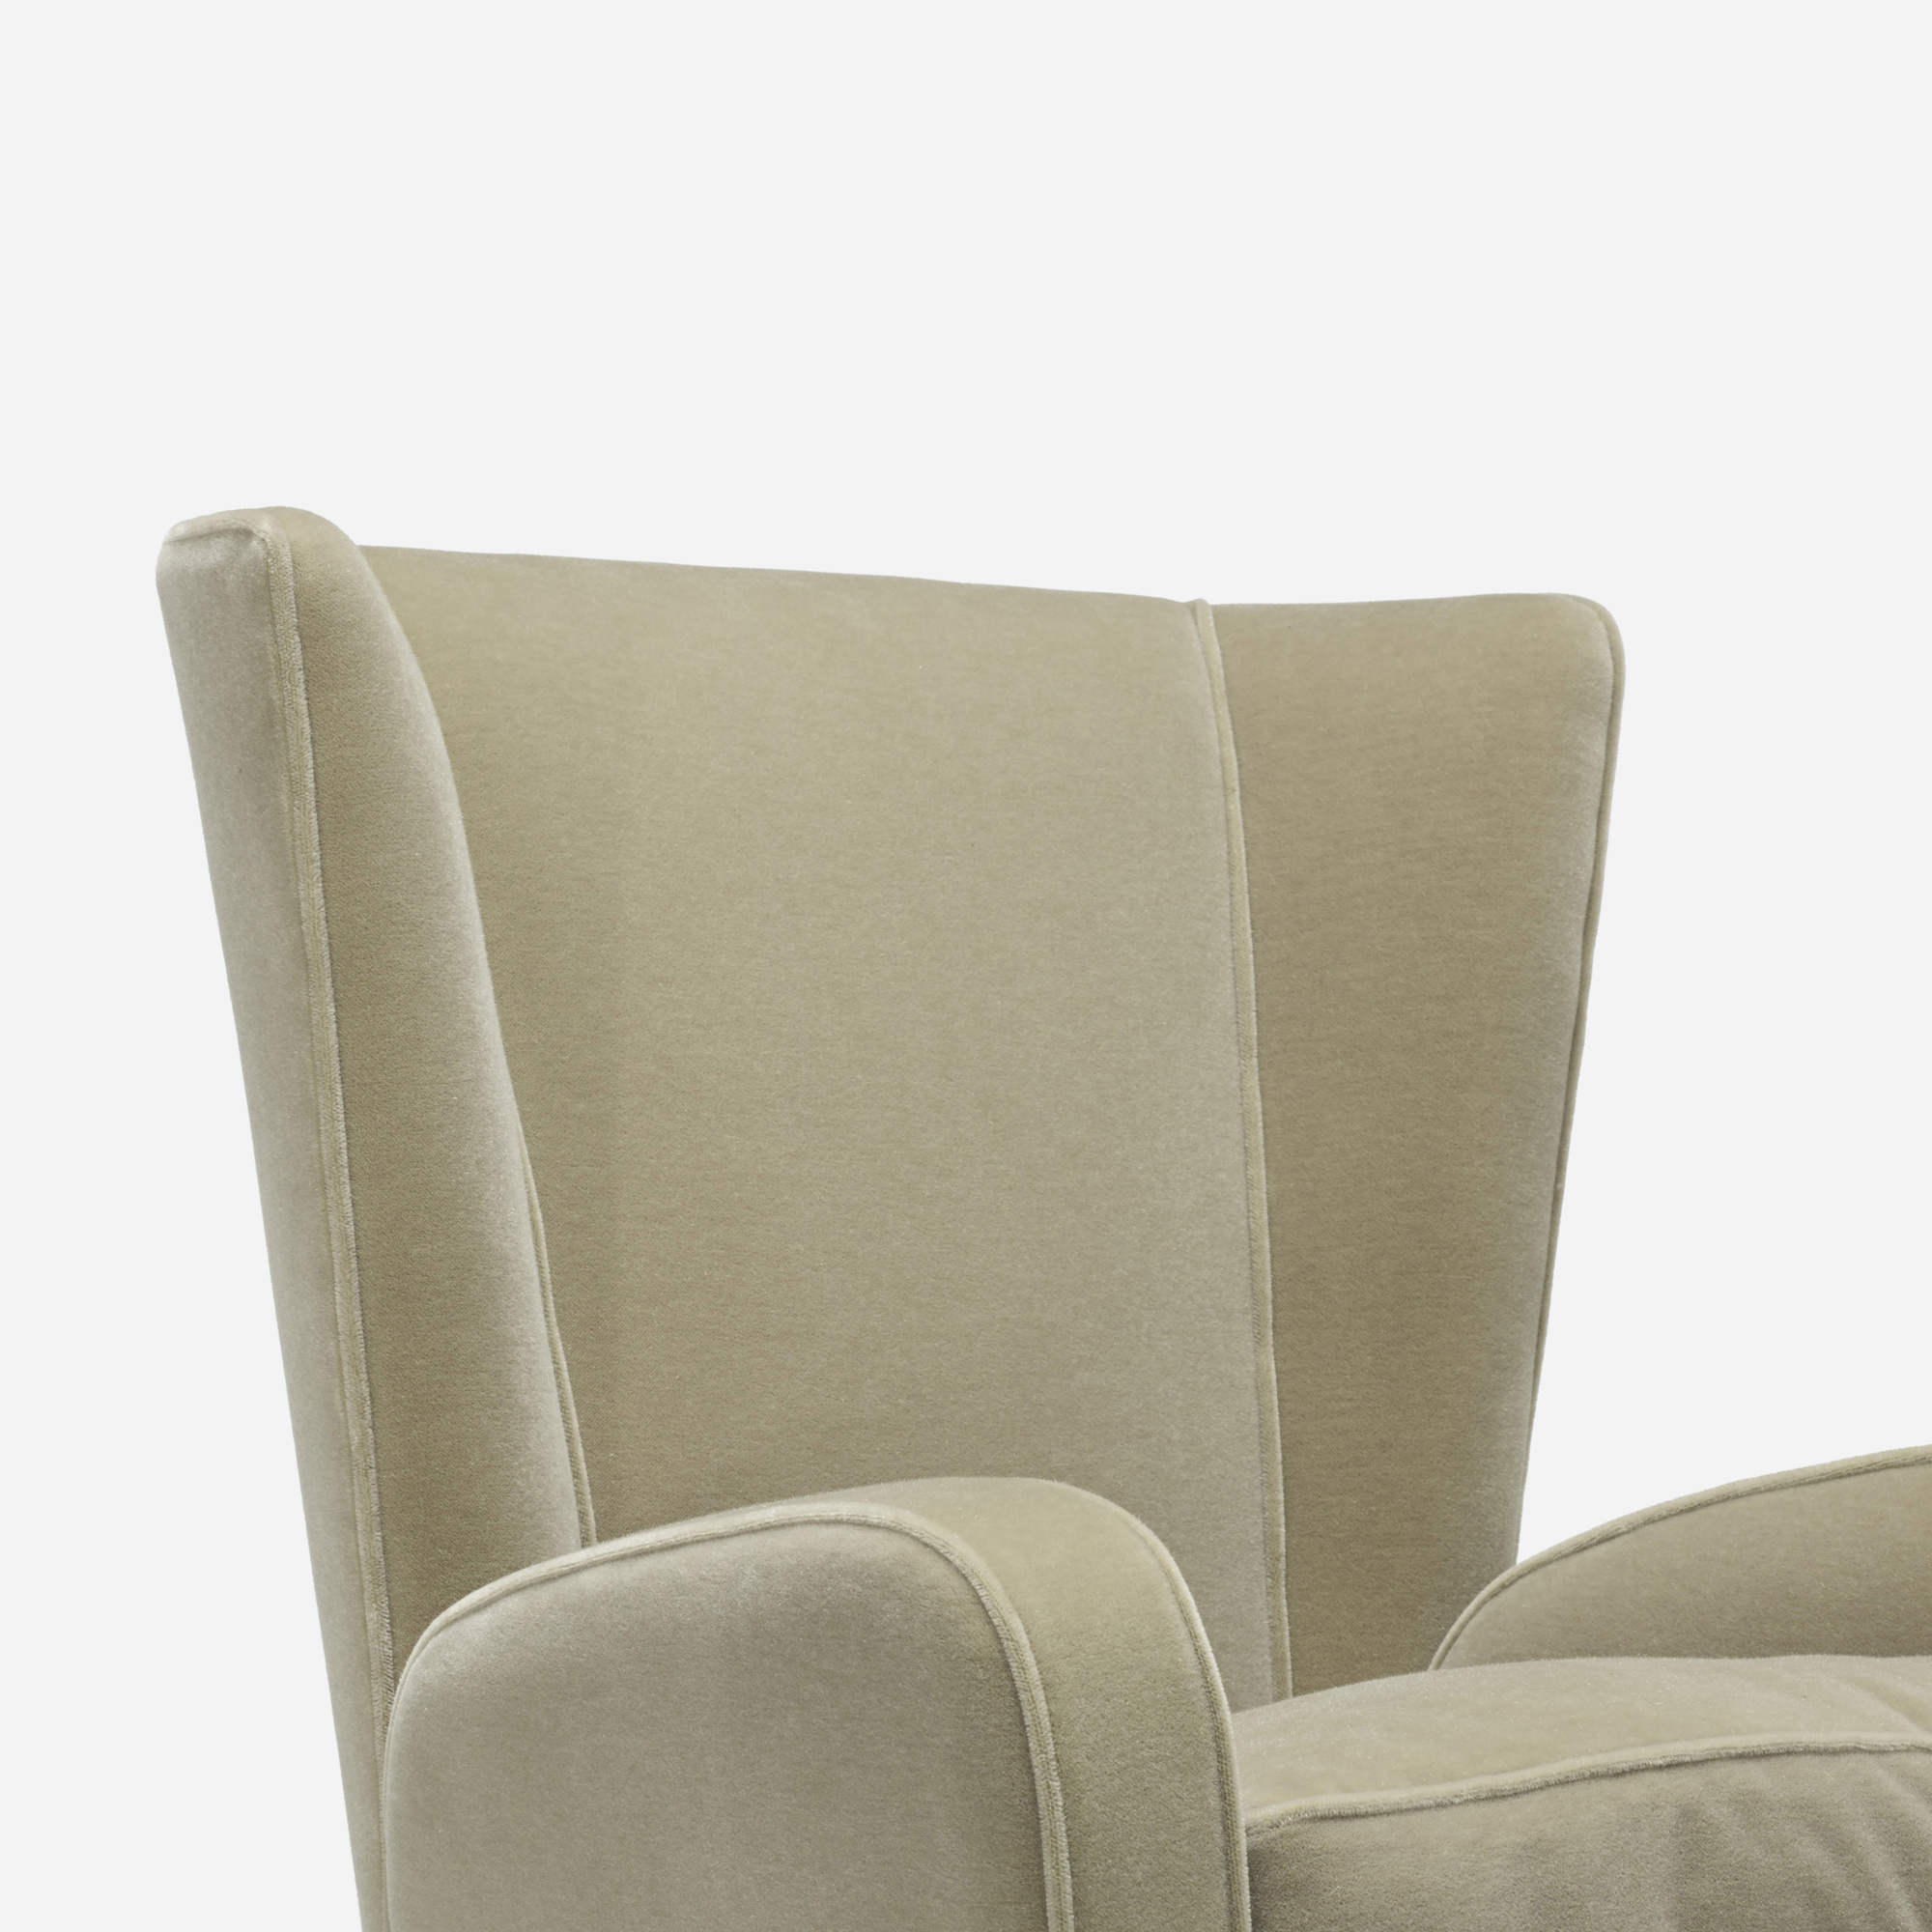 242: Paolo Buffa / pair of lounge chairs from Hotel Bristol, Merano (5 of 5)